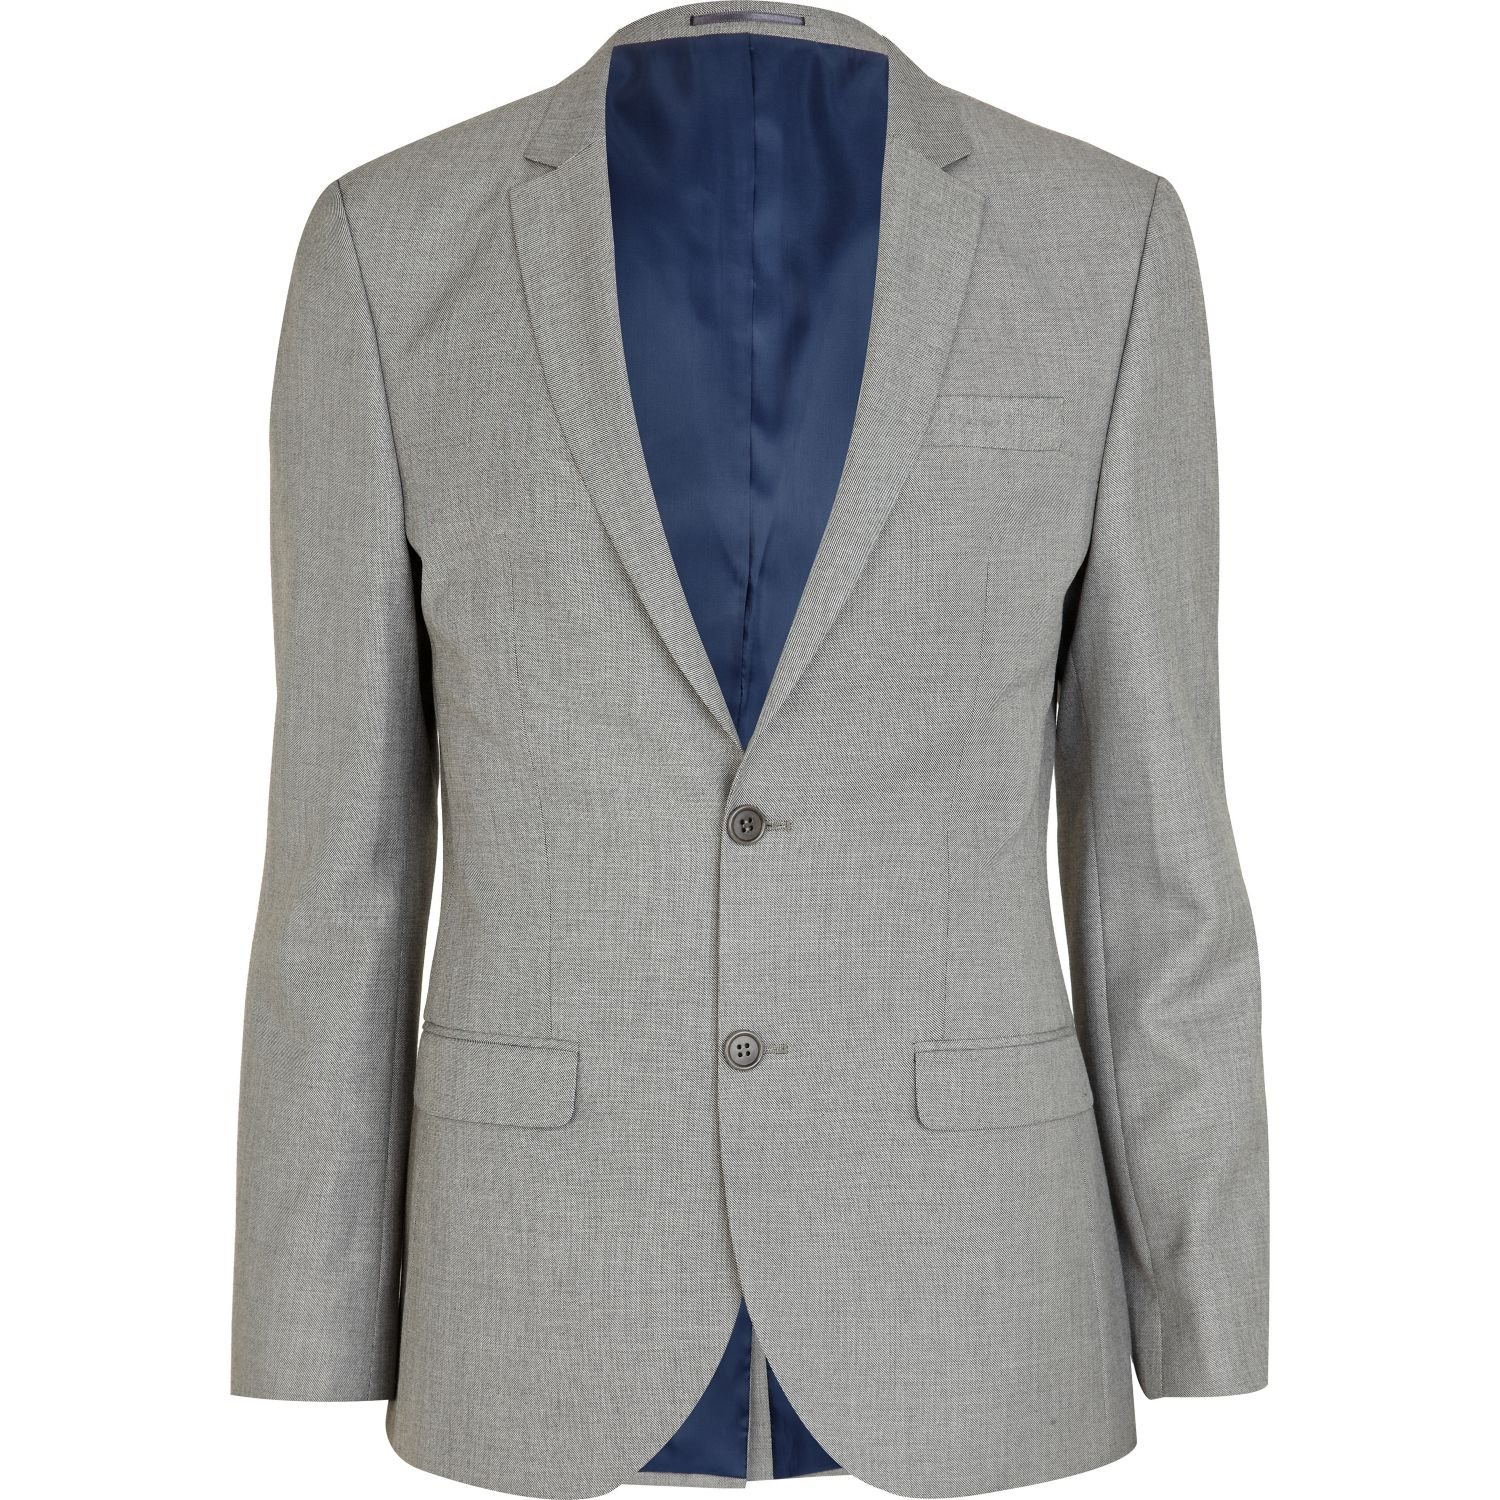 Sears has a great selection of men's suit jackets. Find the best men's suit jackets from the brands you love at Sears.